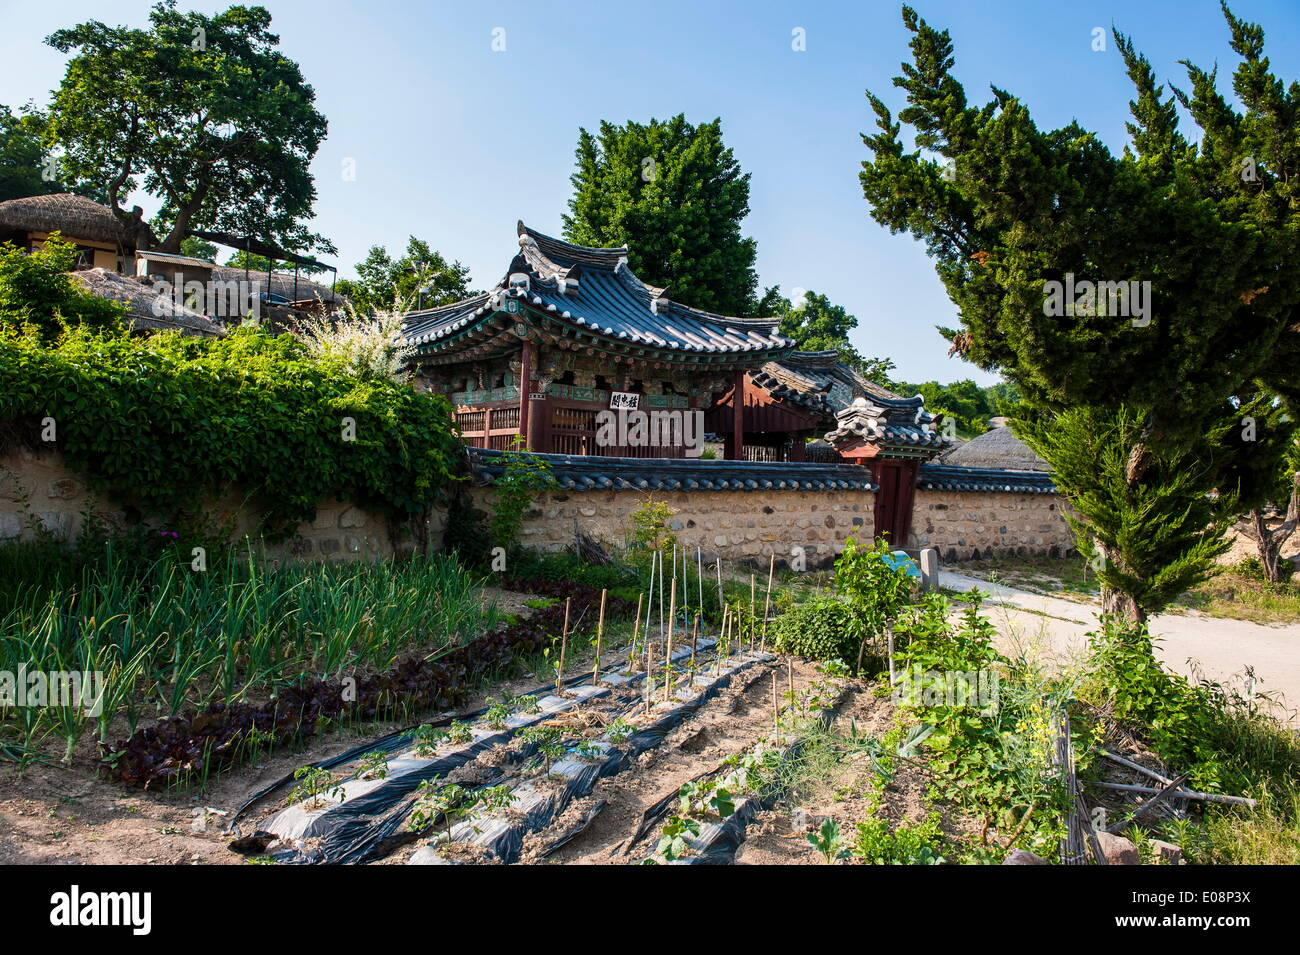 Traditional wooden house in the Yangdong folk village near Gyeongju, South Korea, Asia - Stock Image